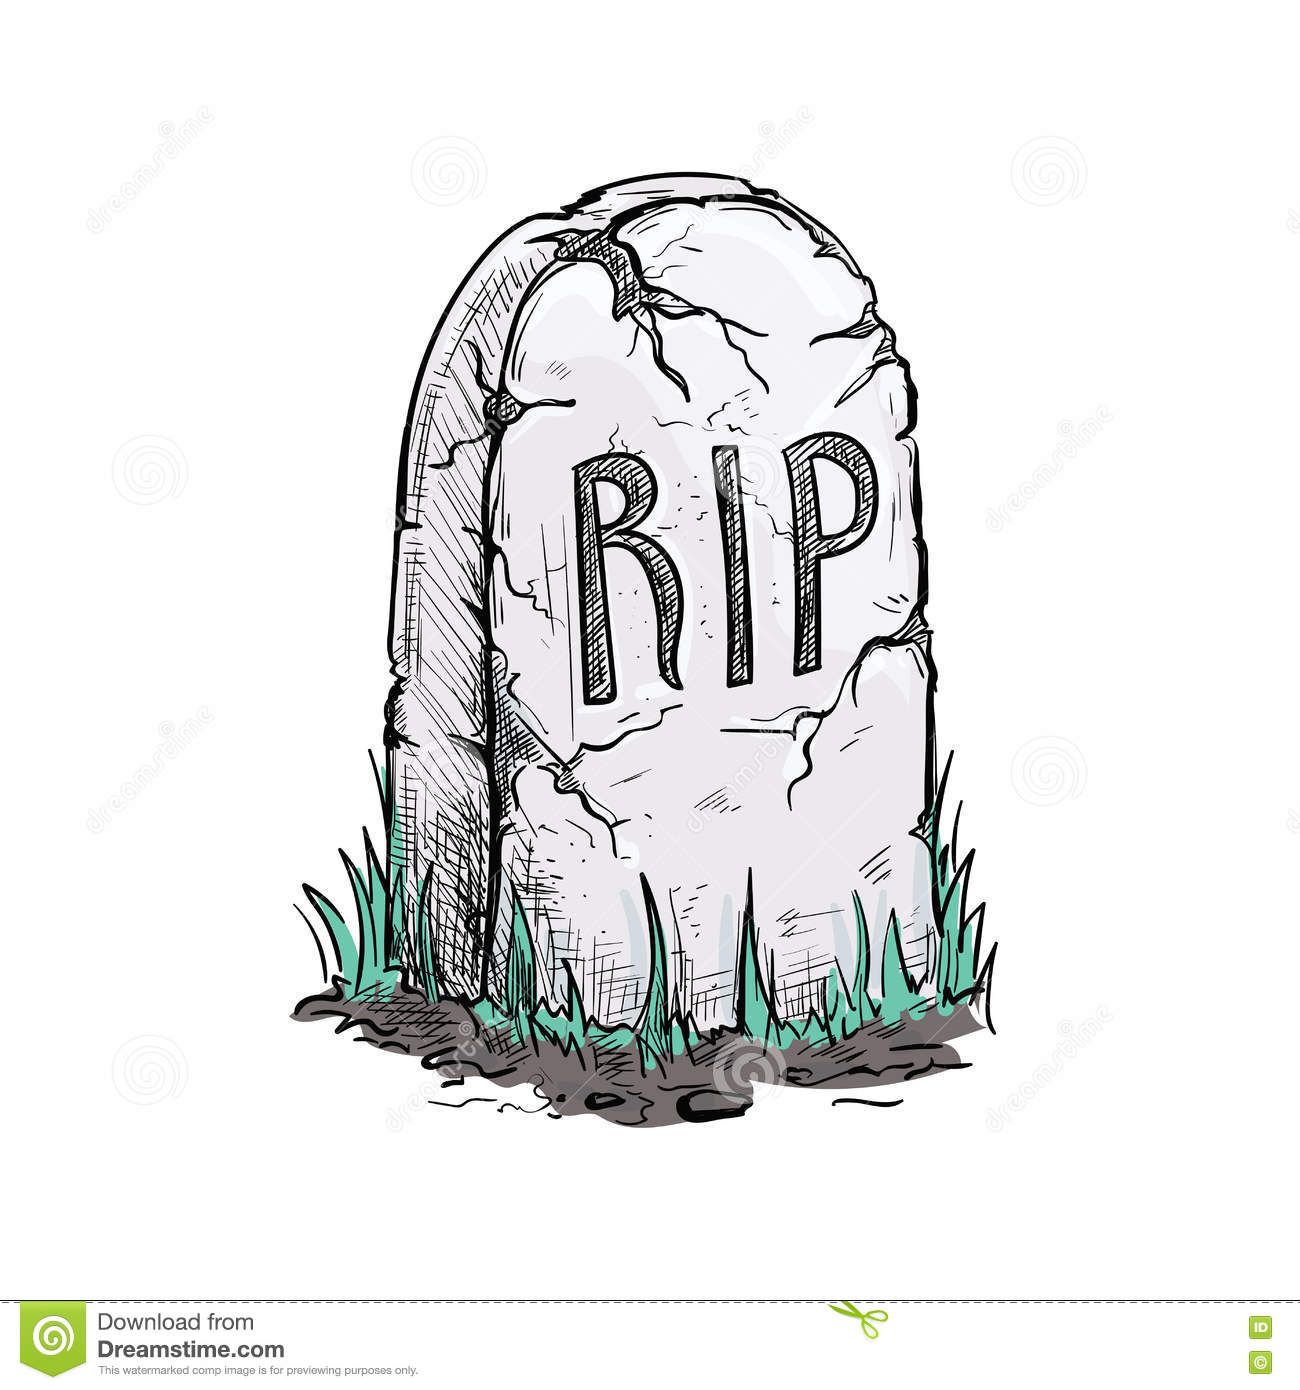 Cartoon Grave Pictures To Pin